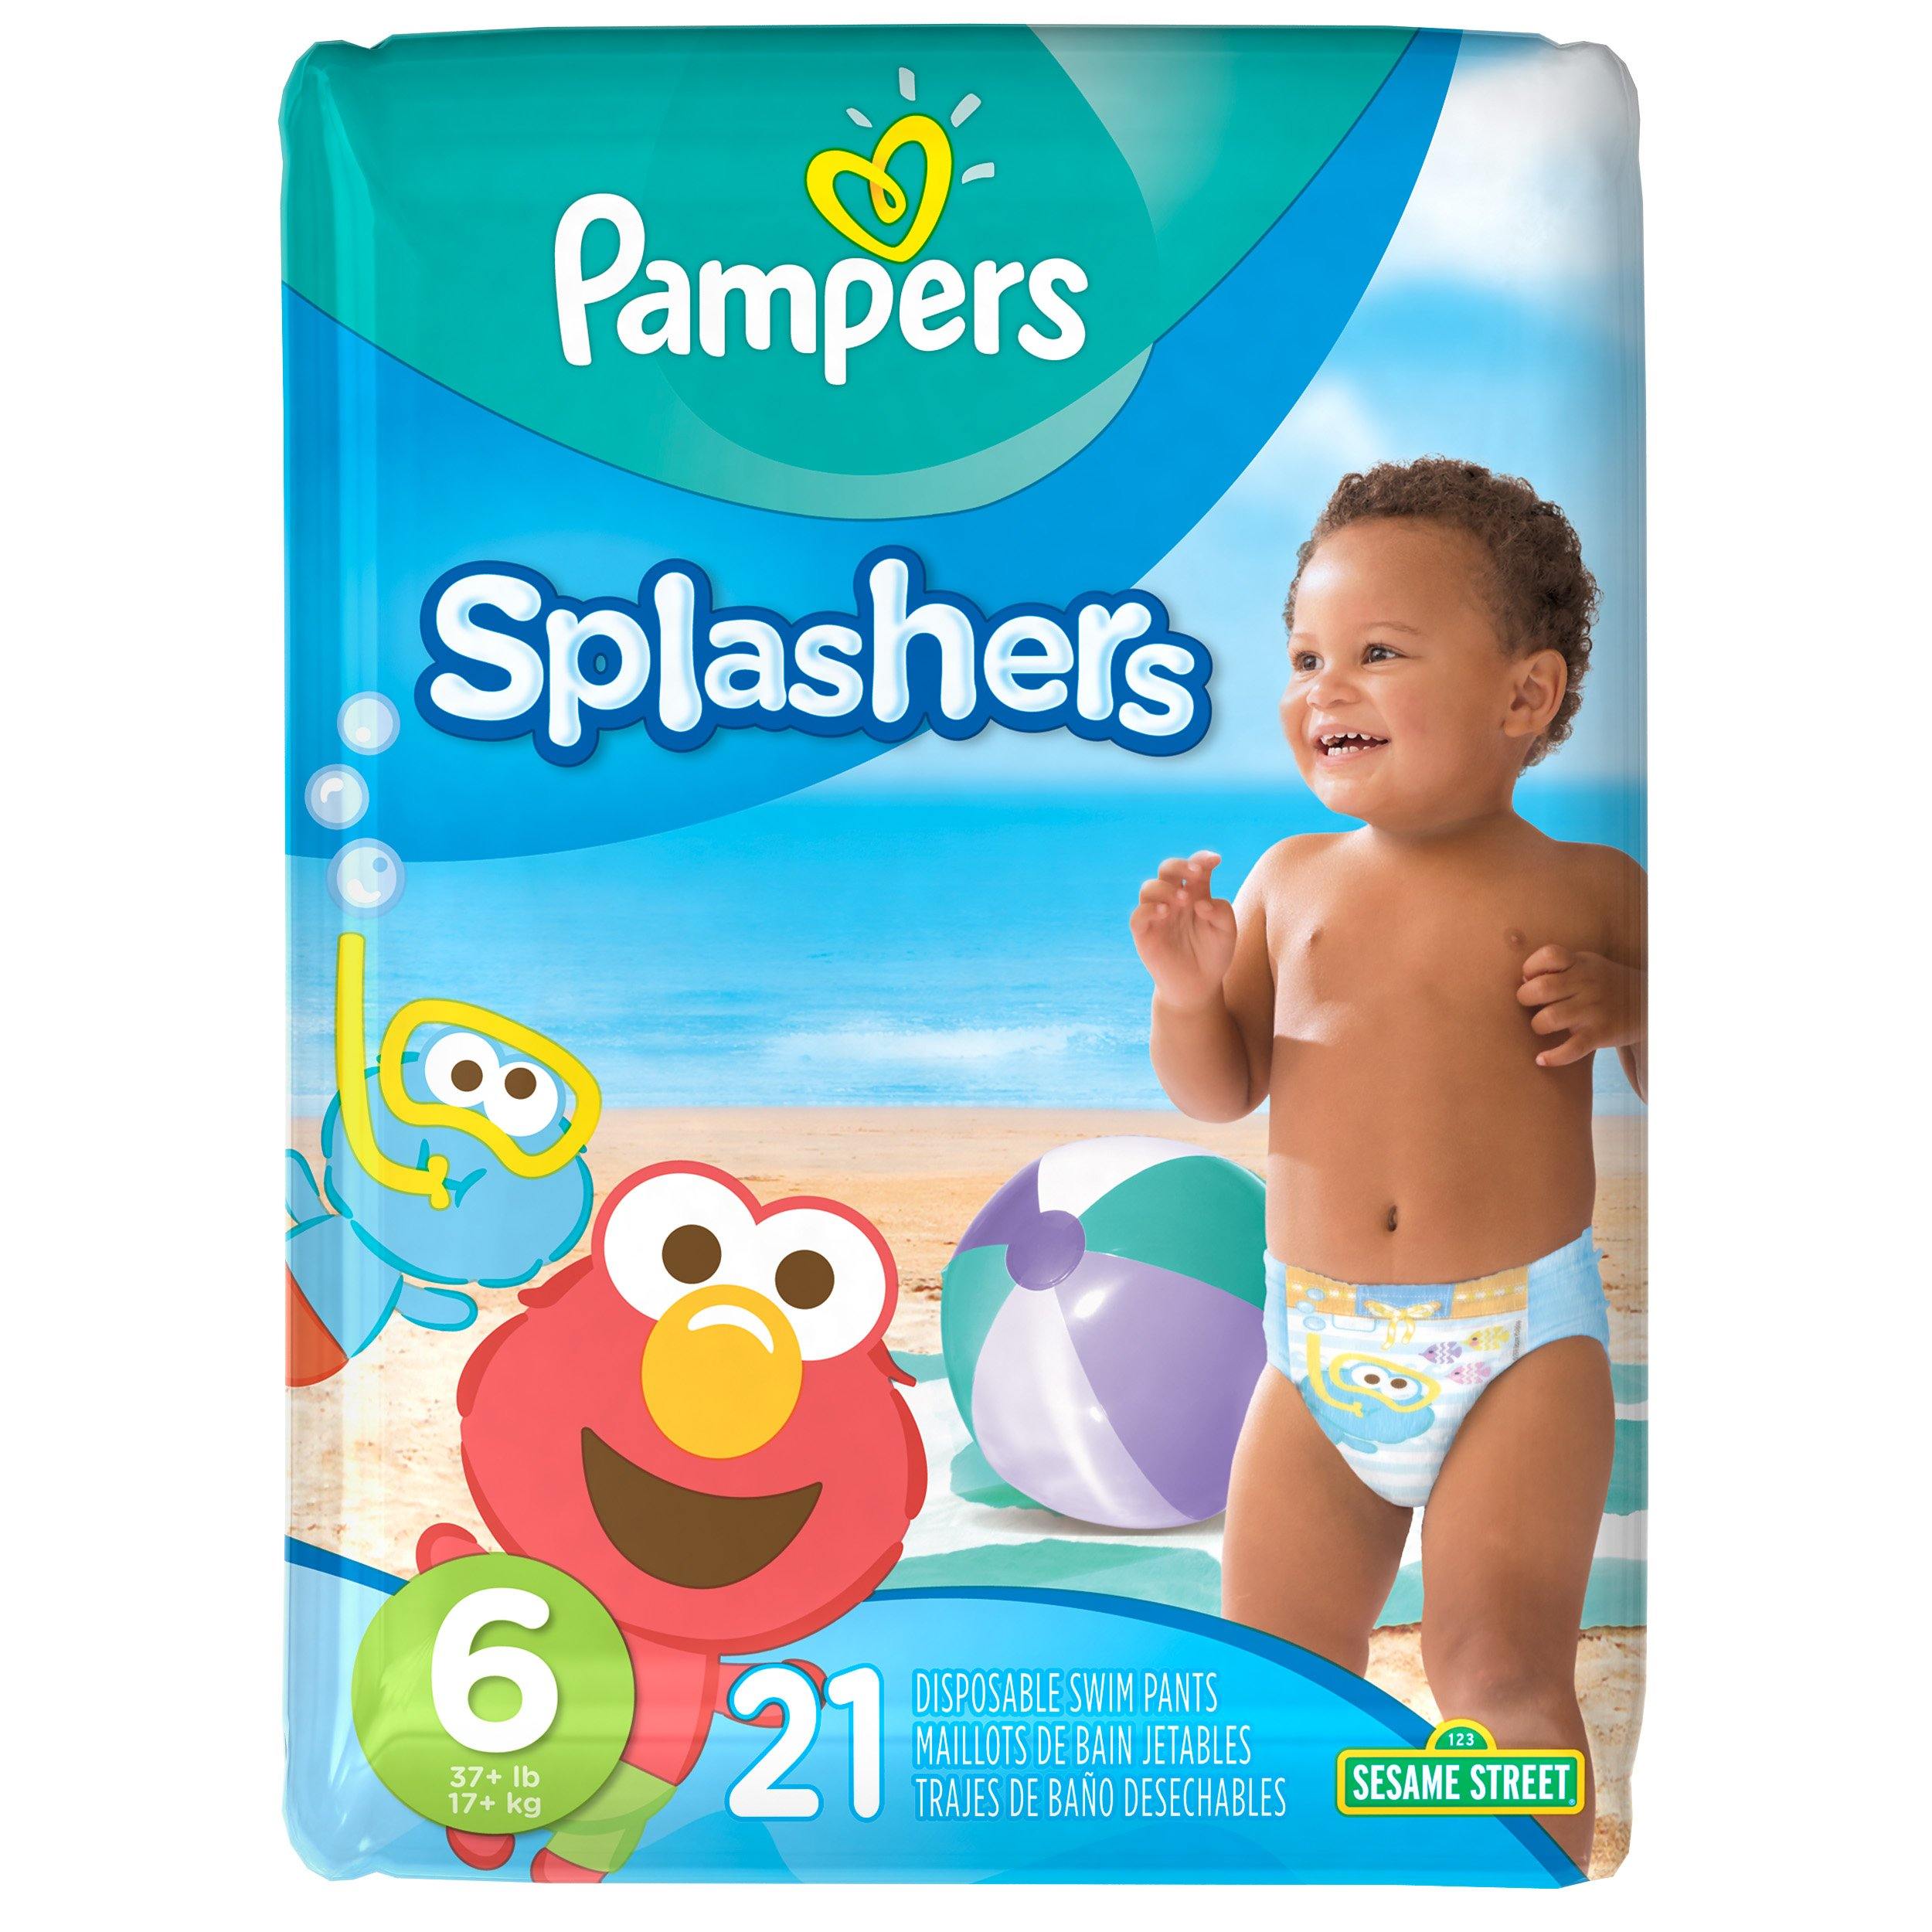 Pampers Splashers Disposable Swim Diapers, Size 6, 21 Count, JUMBO (Pack of 6)